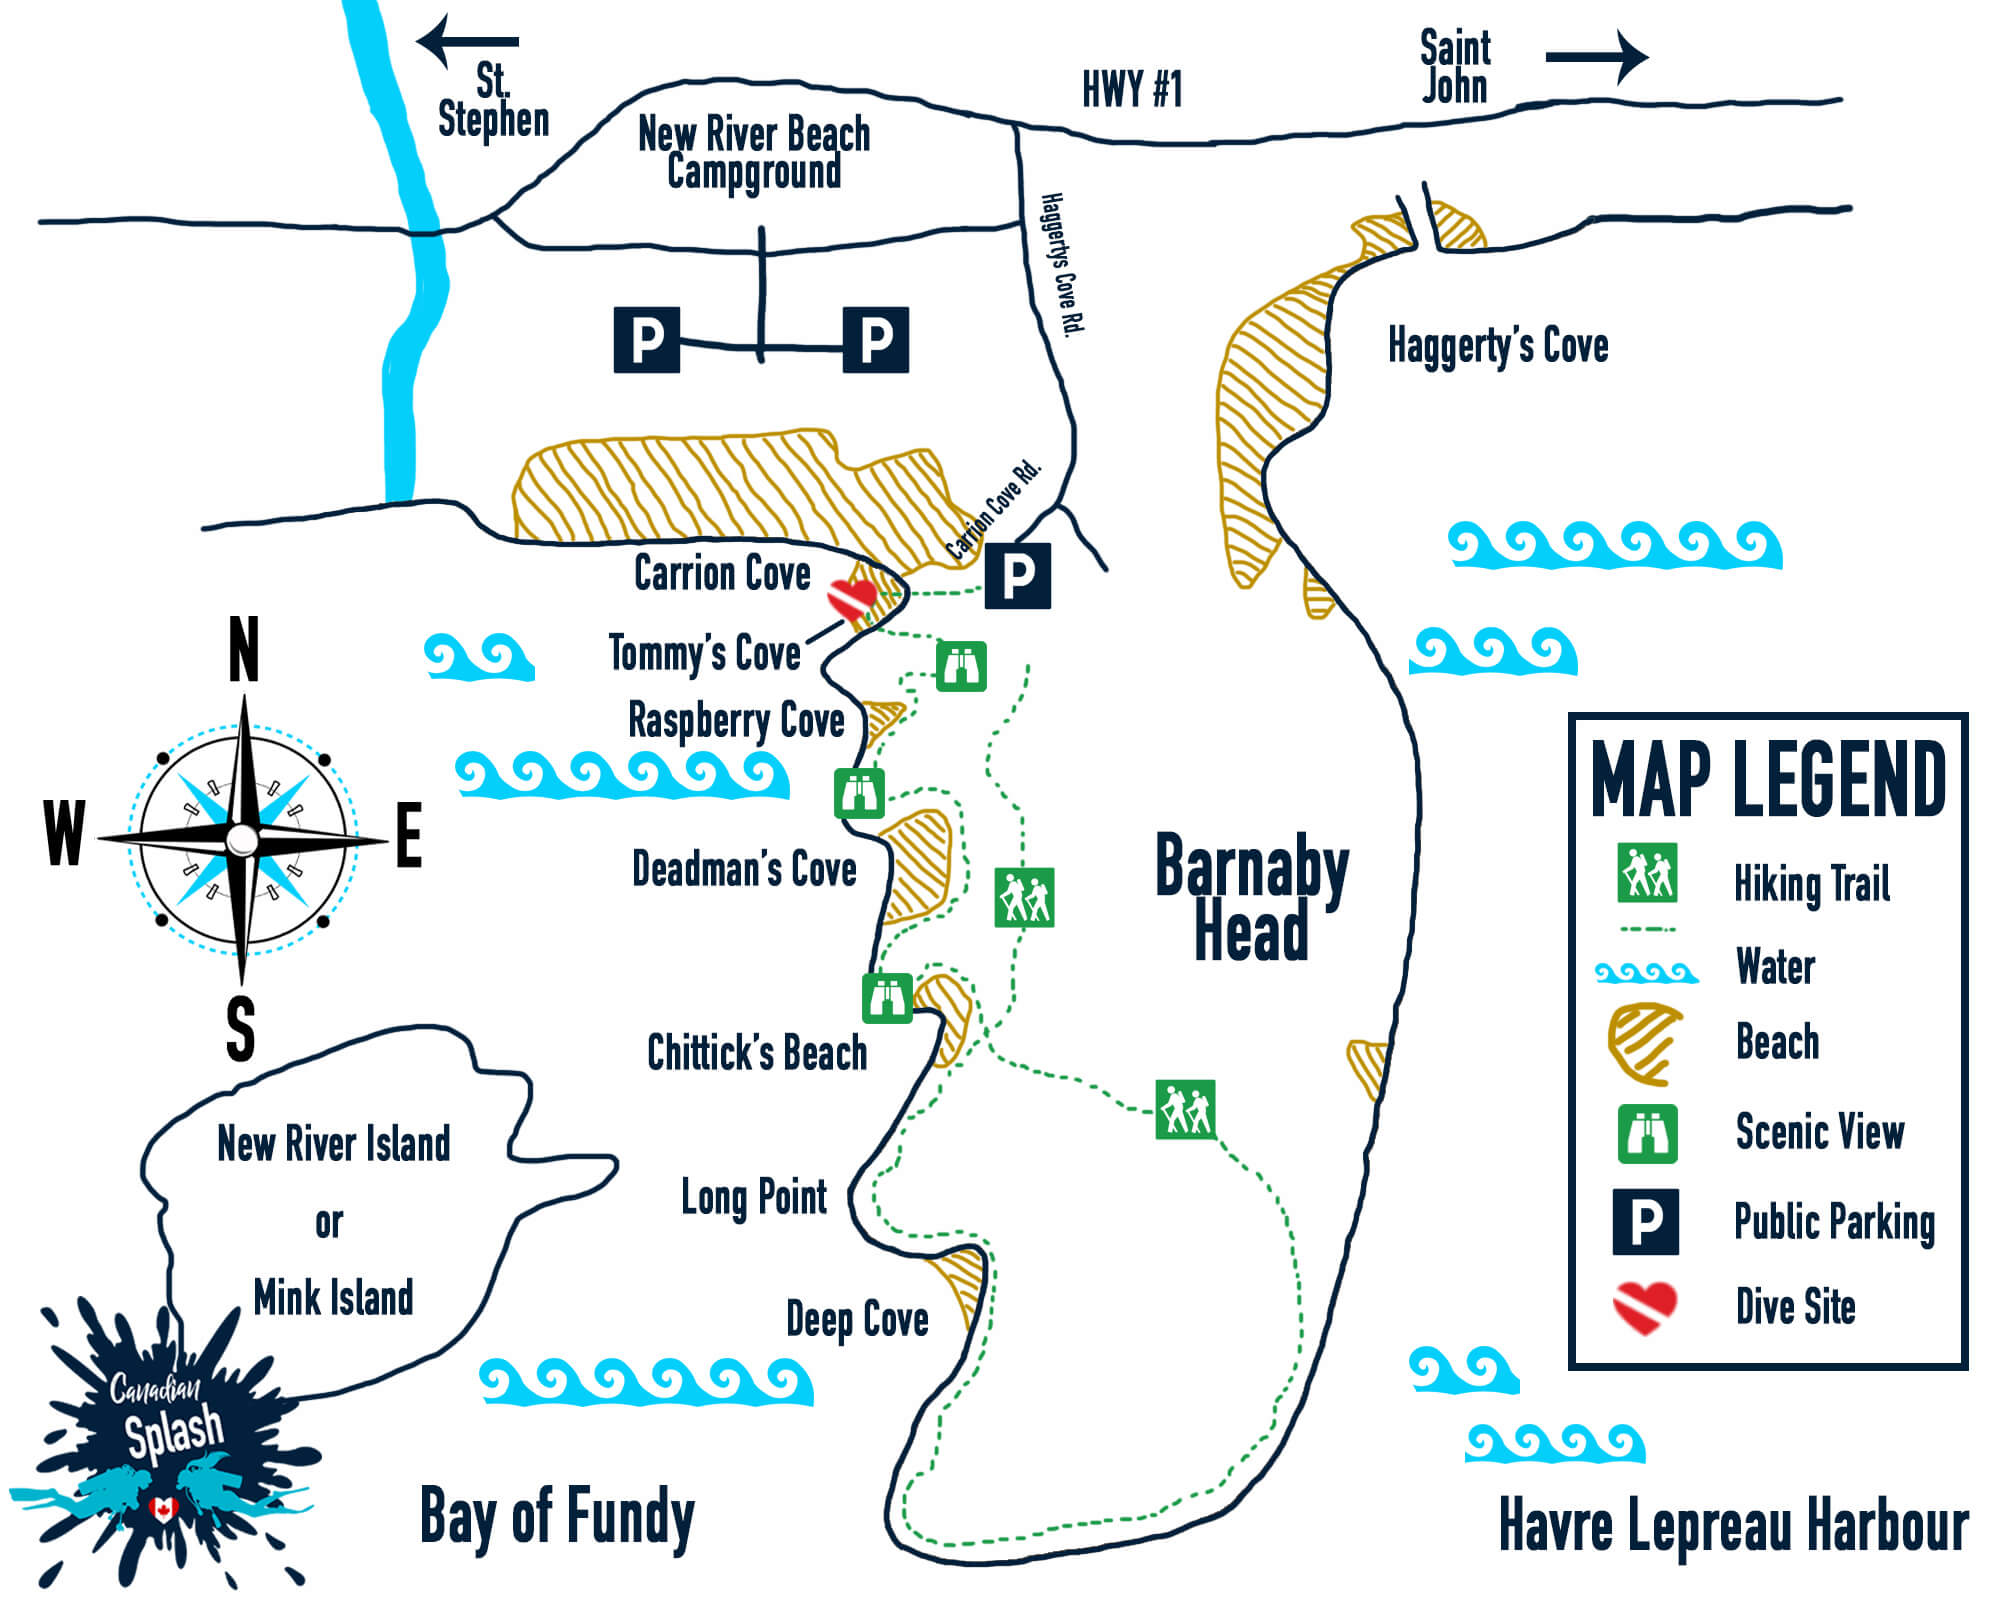 New River Beach Scuba Diving Map, Shore Diving Saint John New Brunswick, Canadian Splash